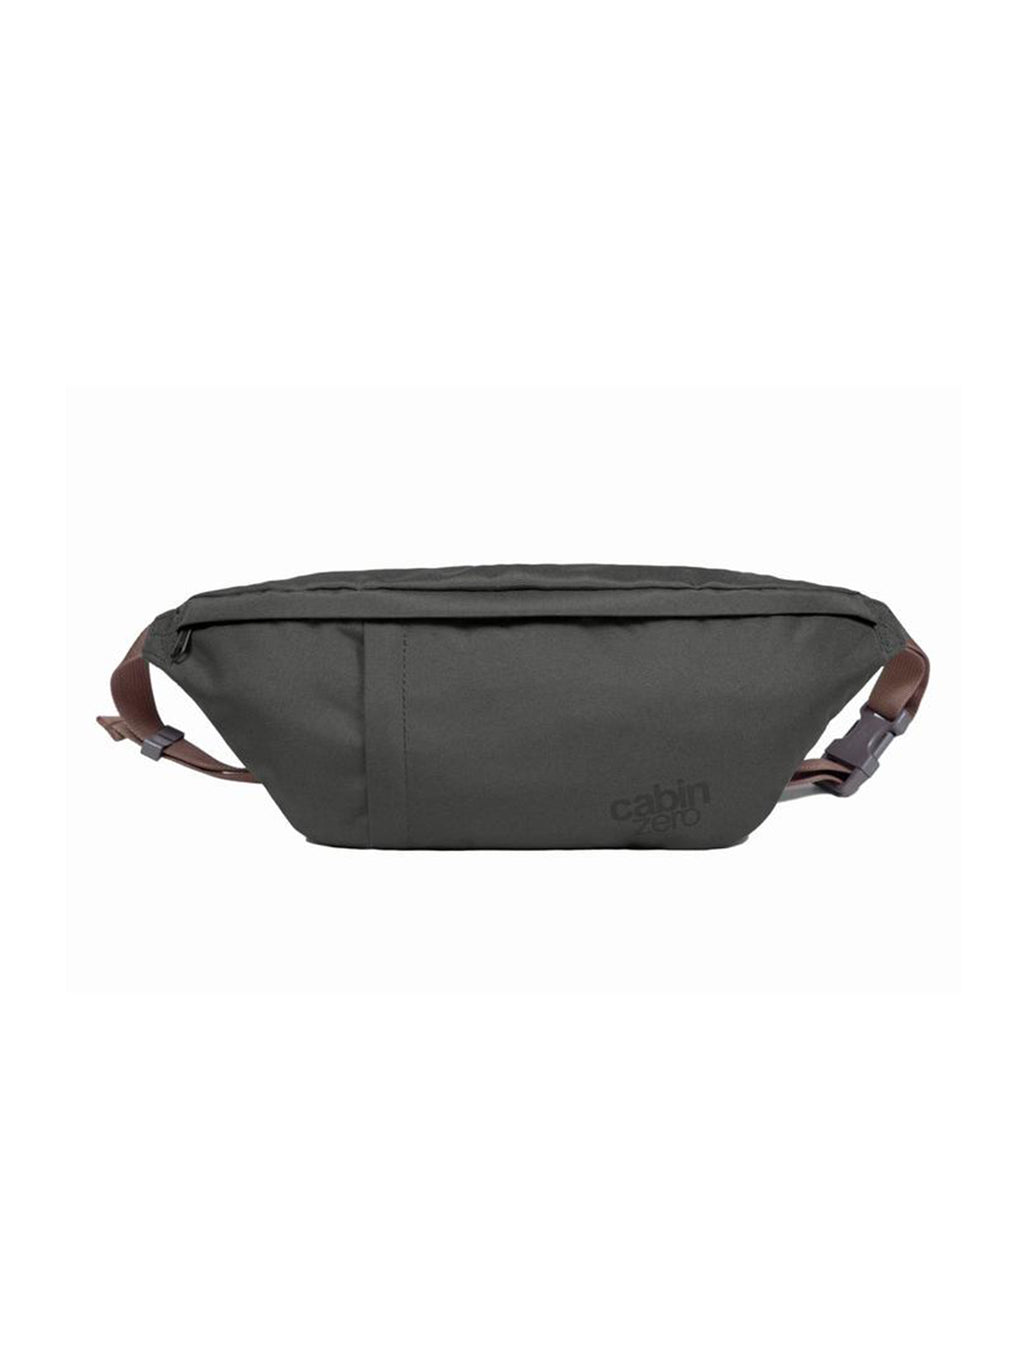 Cabinzero Hip Pack 2L in Black Sand Color